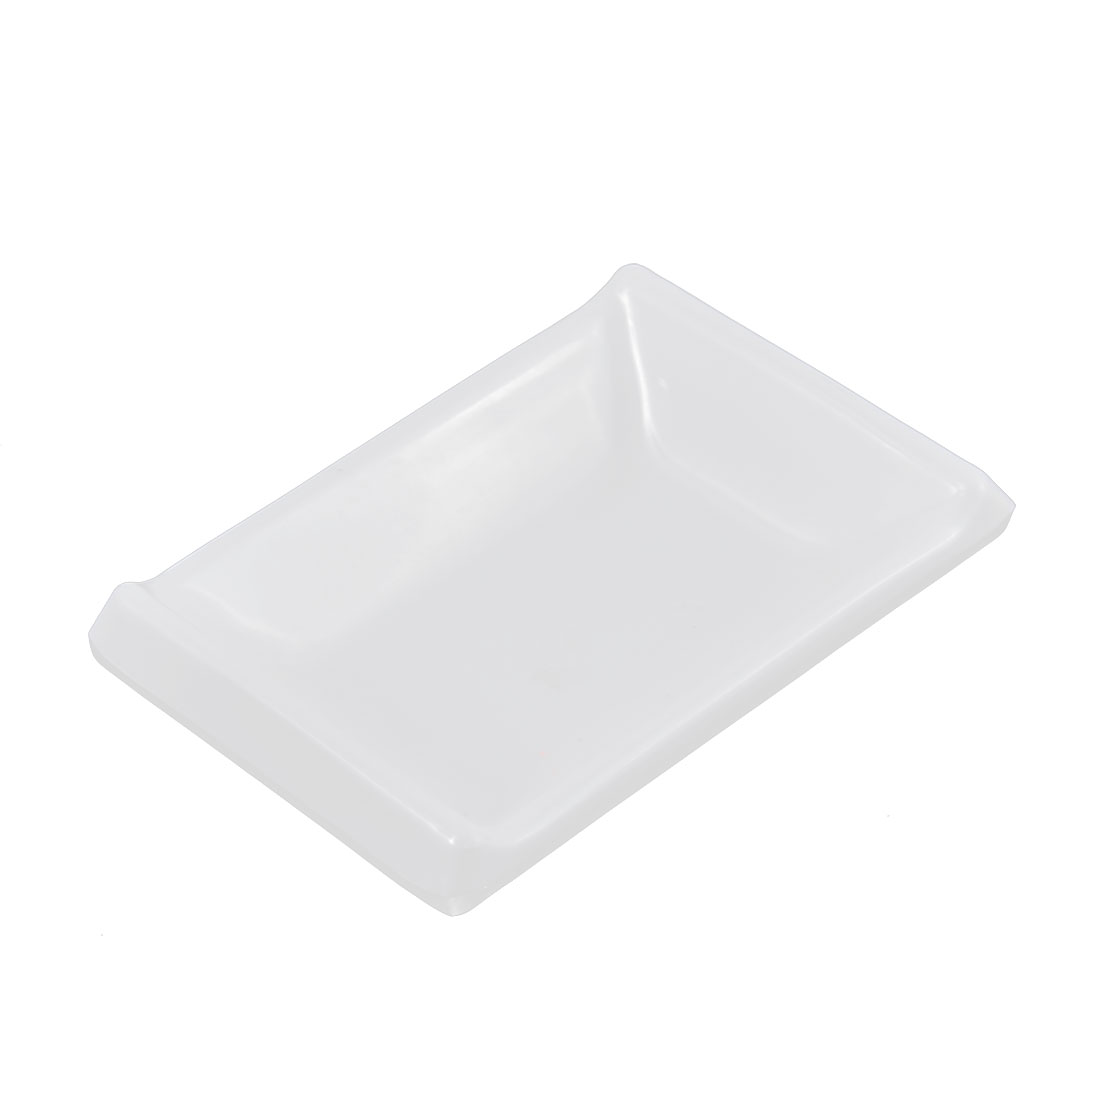 Plastic Sushi Soy Sauce Wasabi Mustard Condiment Serving Dipping Dish Plate